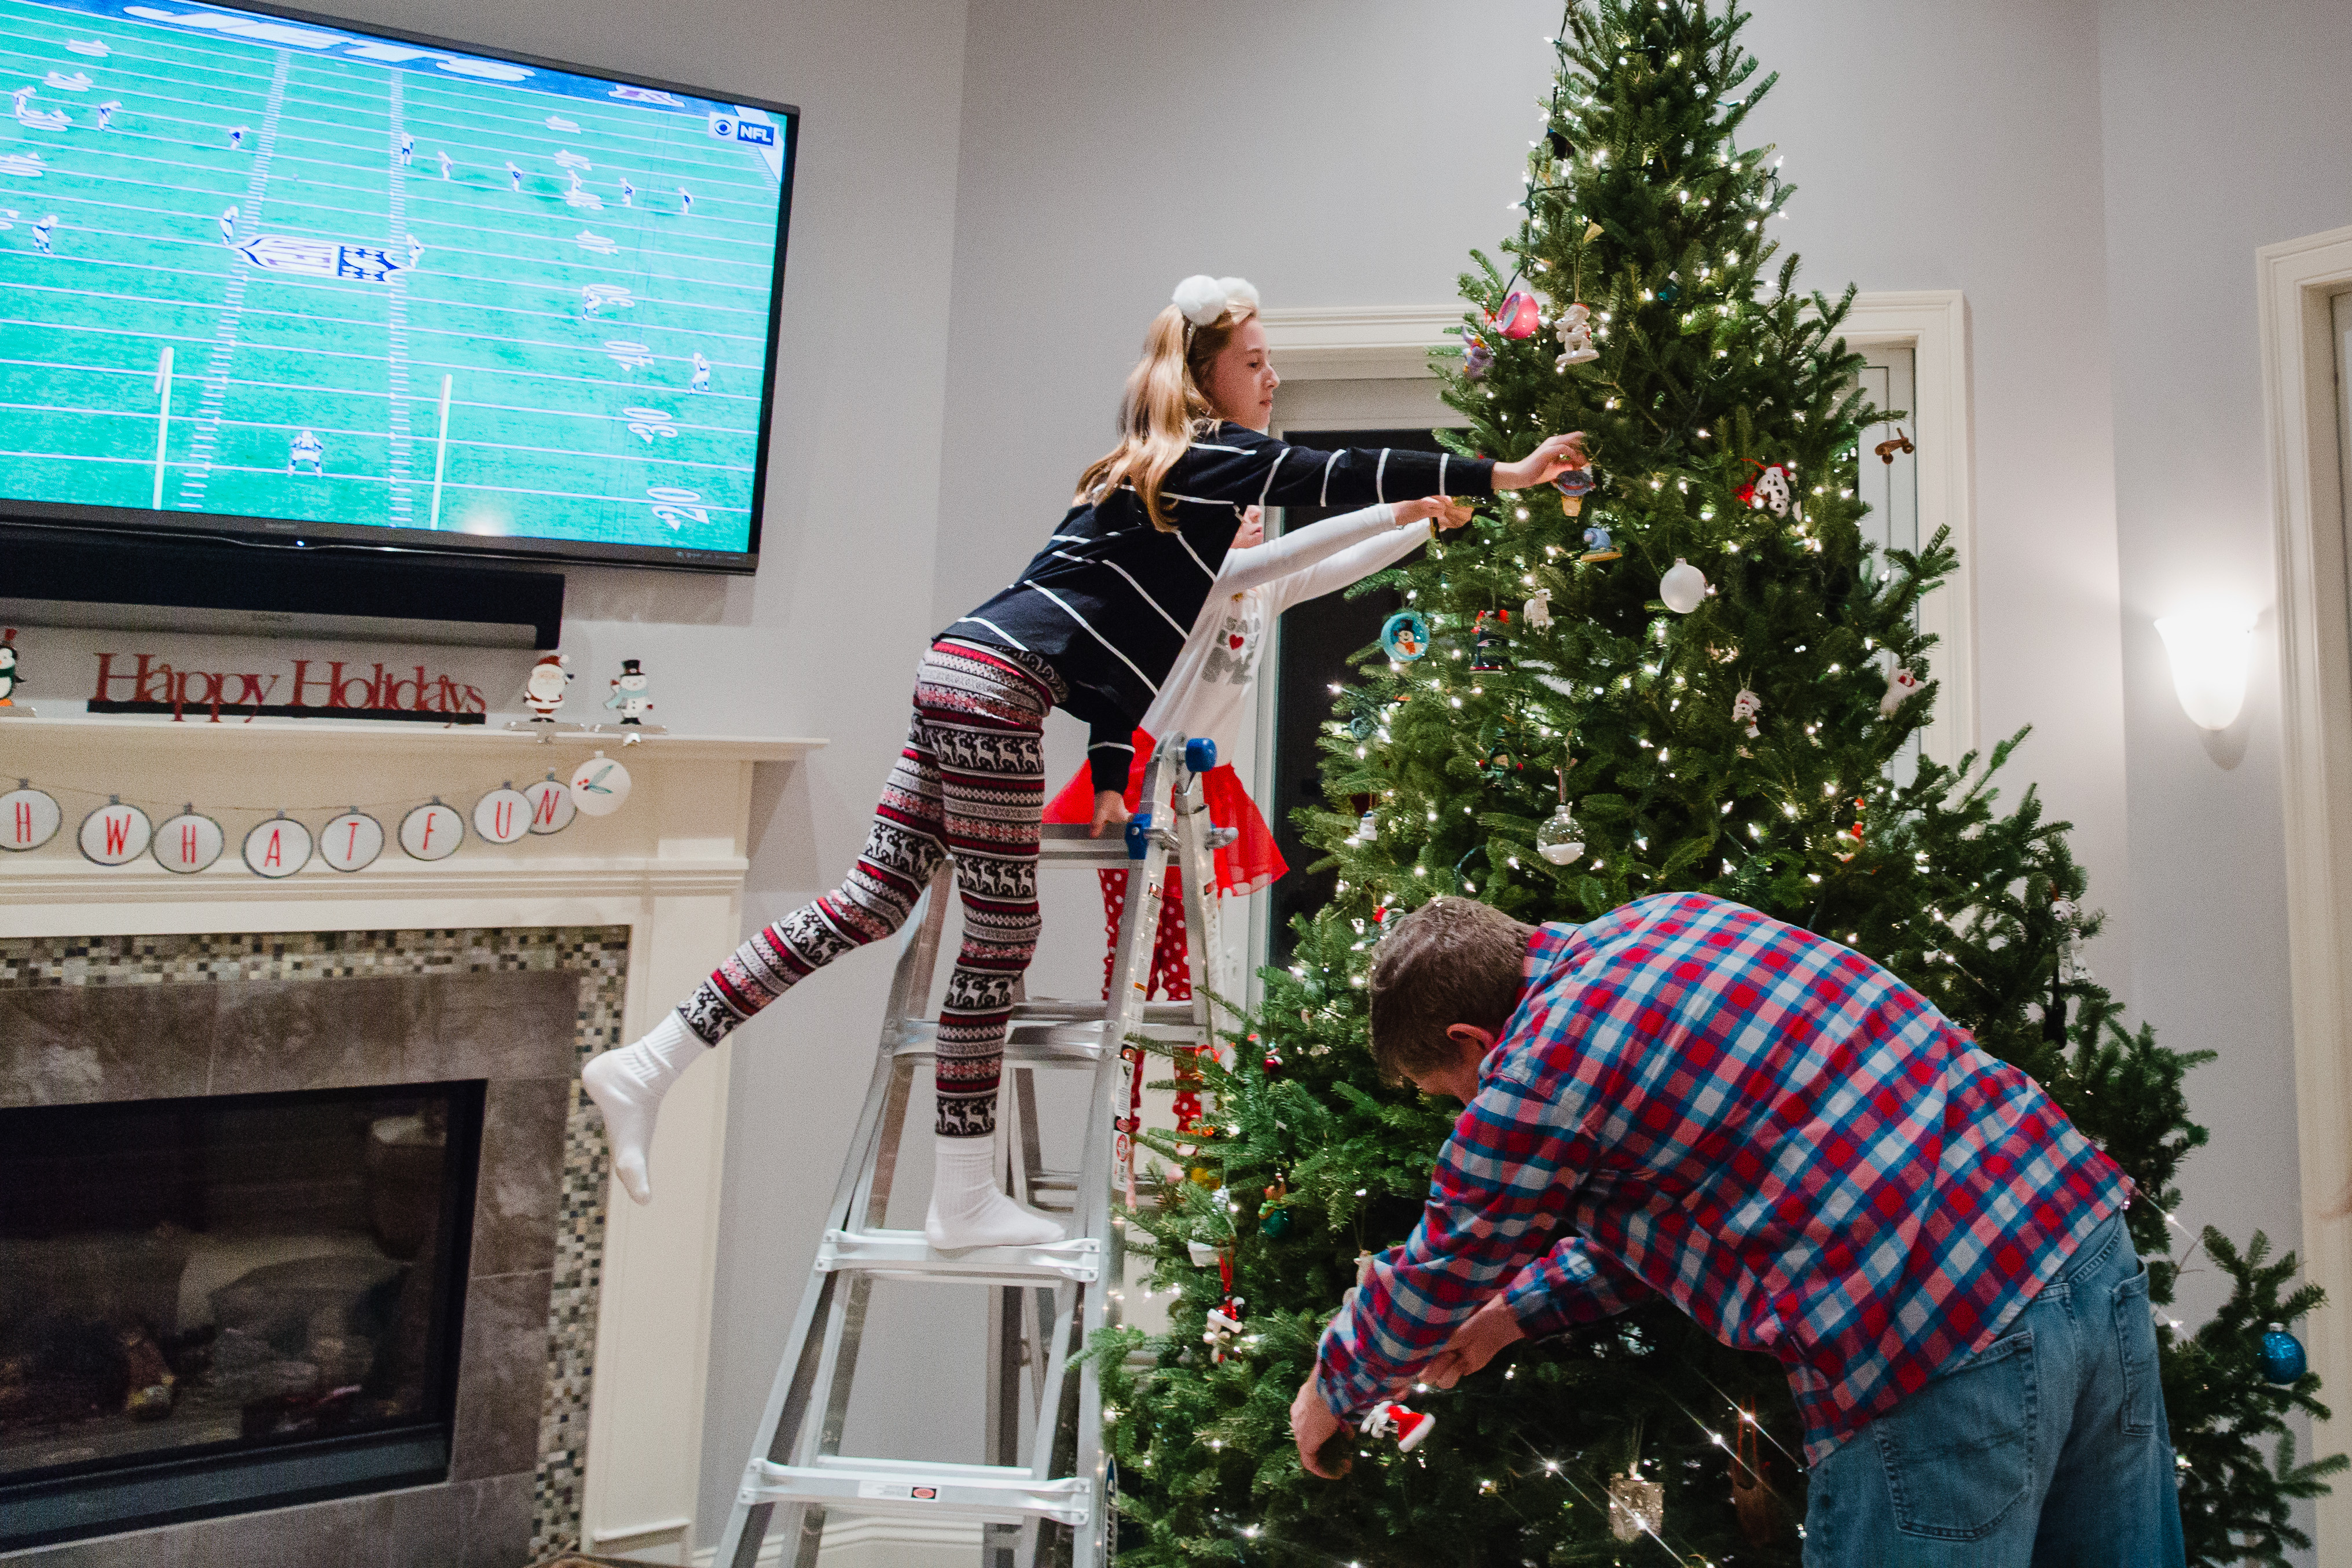 Girl leaning over ladder to hang and ornament on Christmas tree